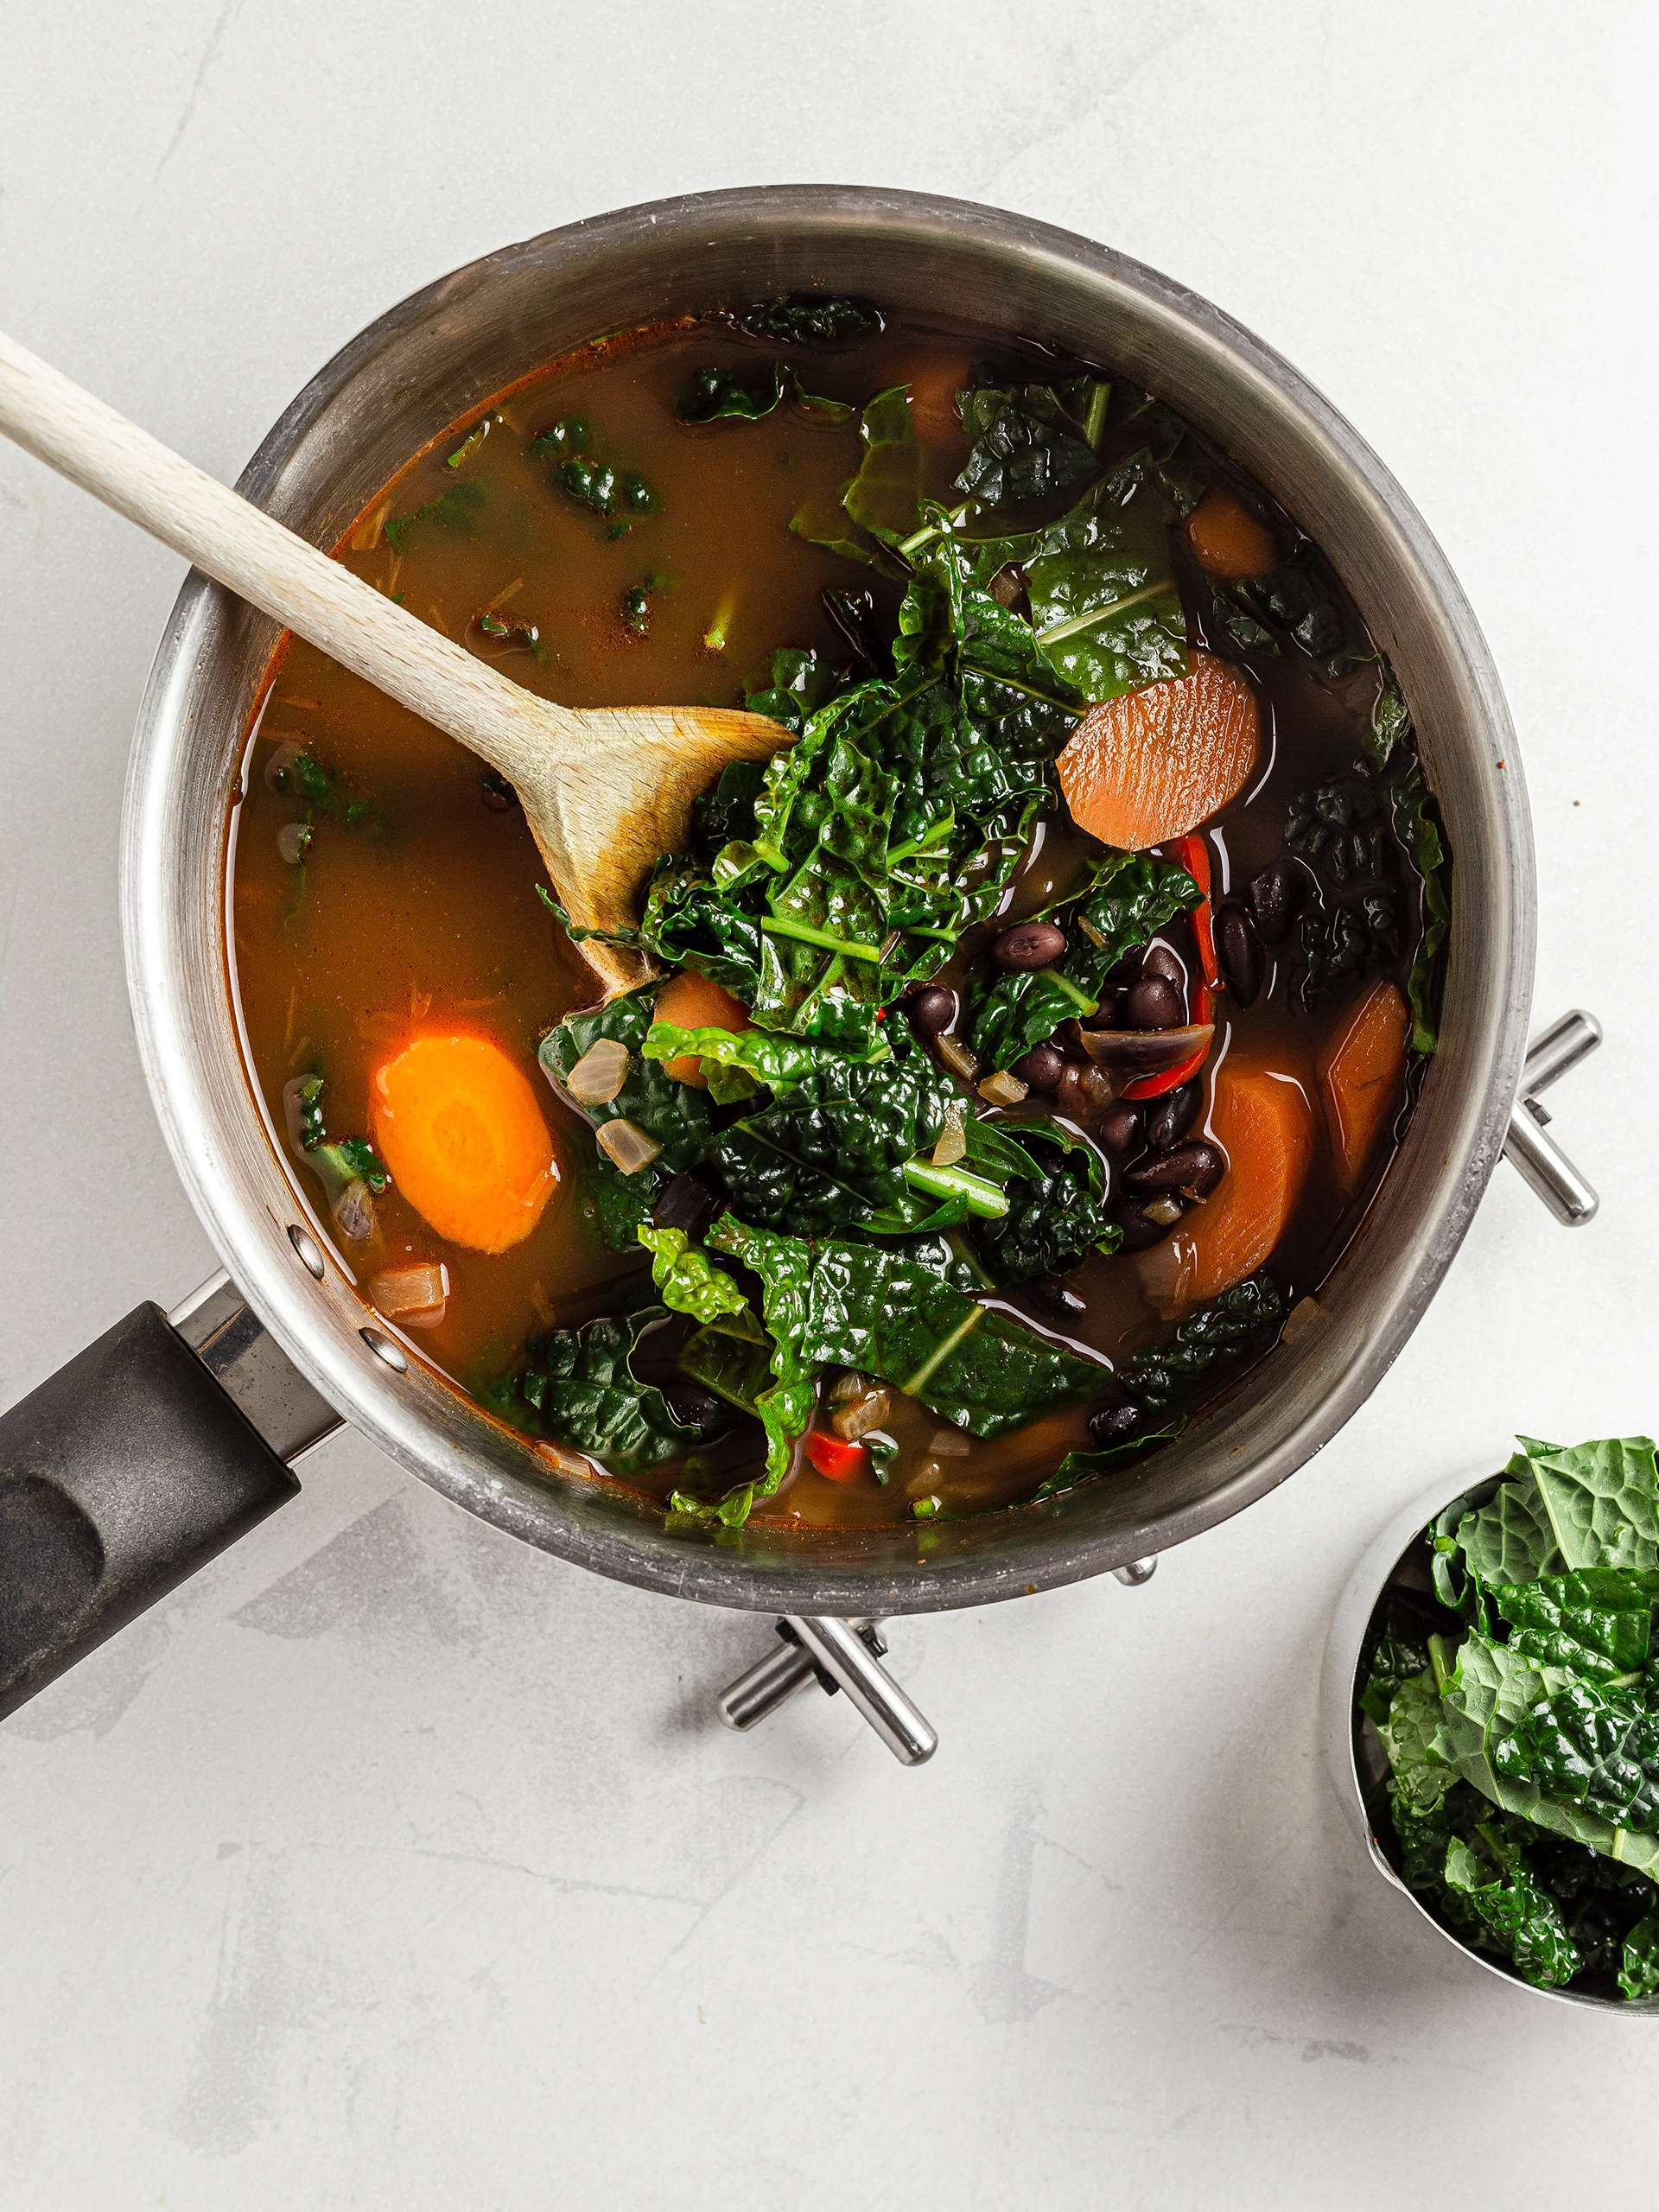 Black kale with carrot and black beans soup